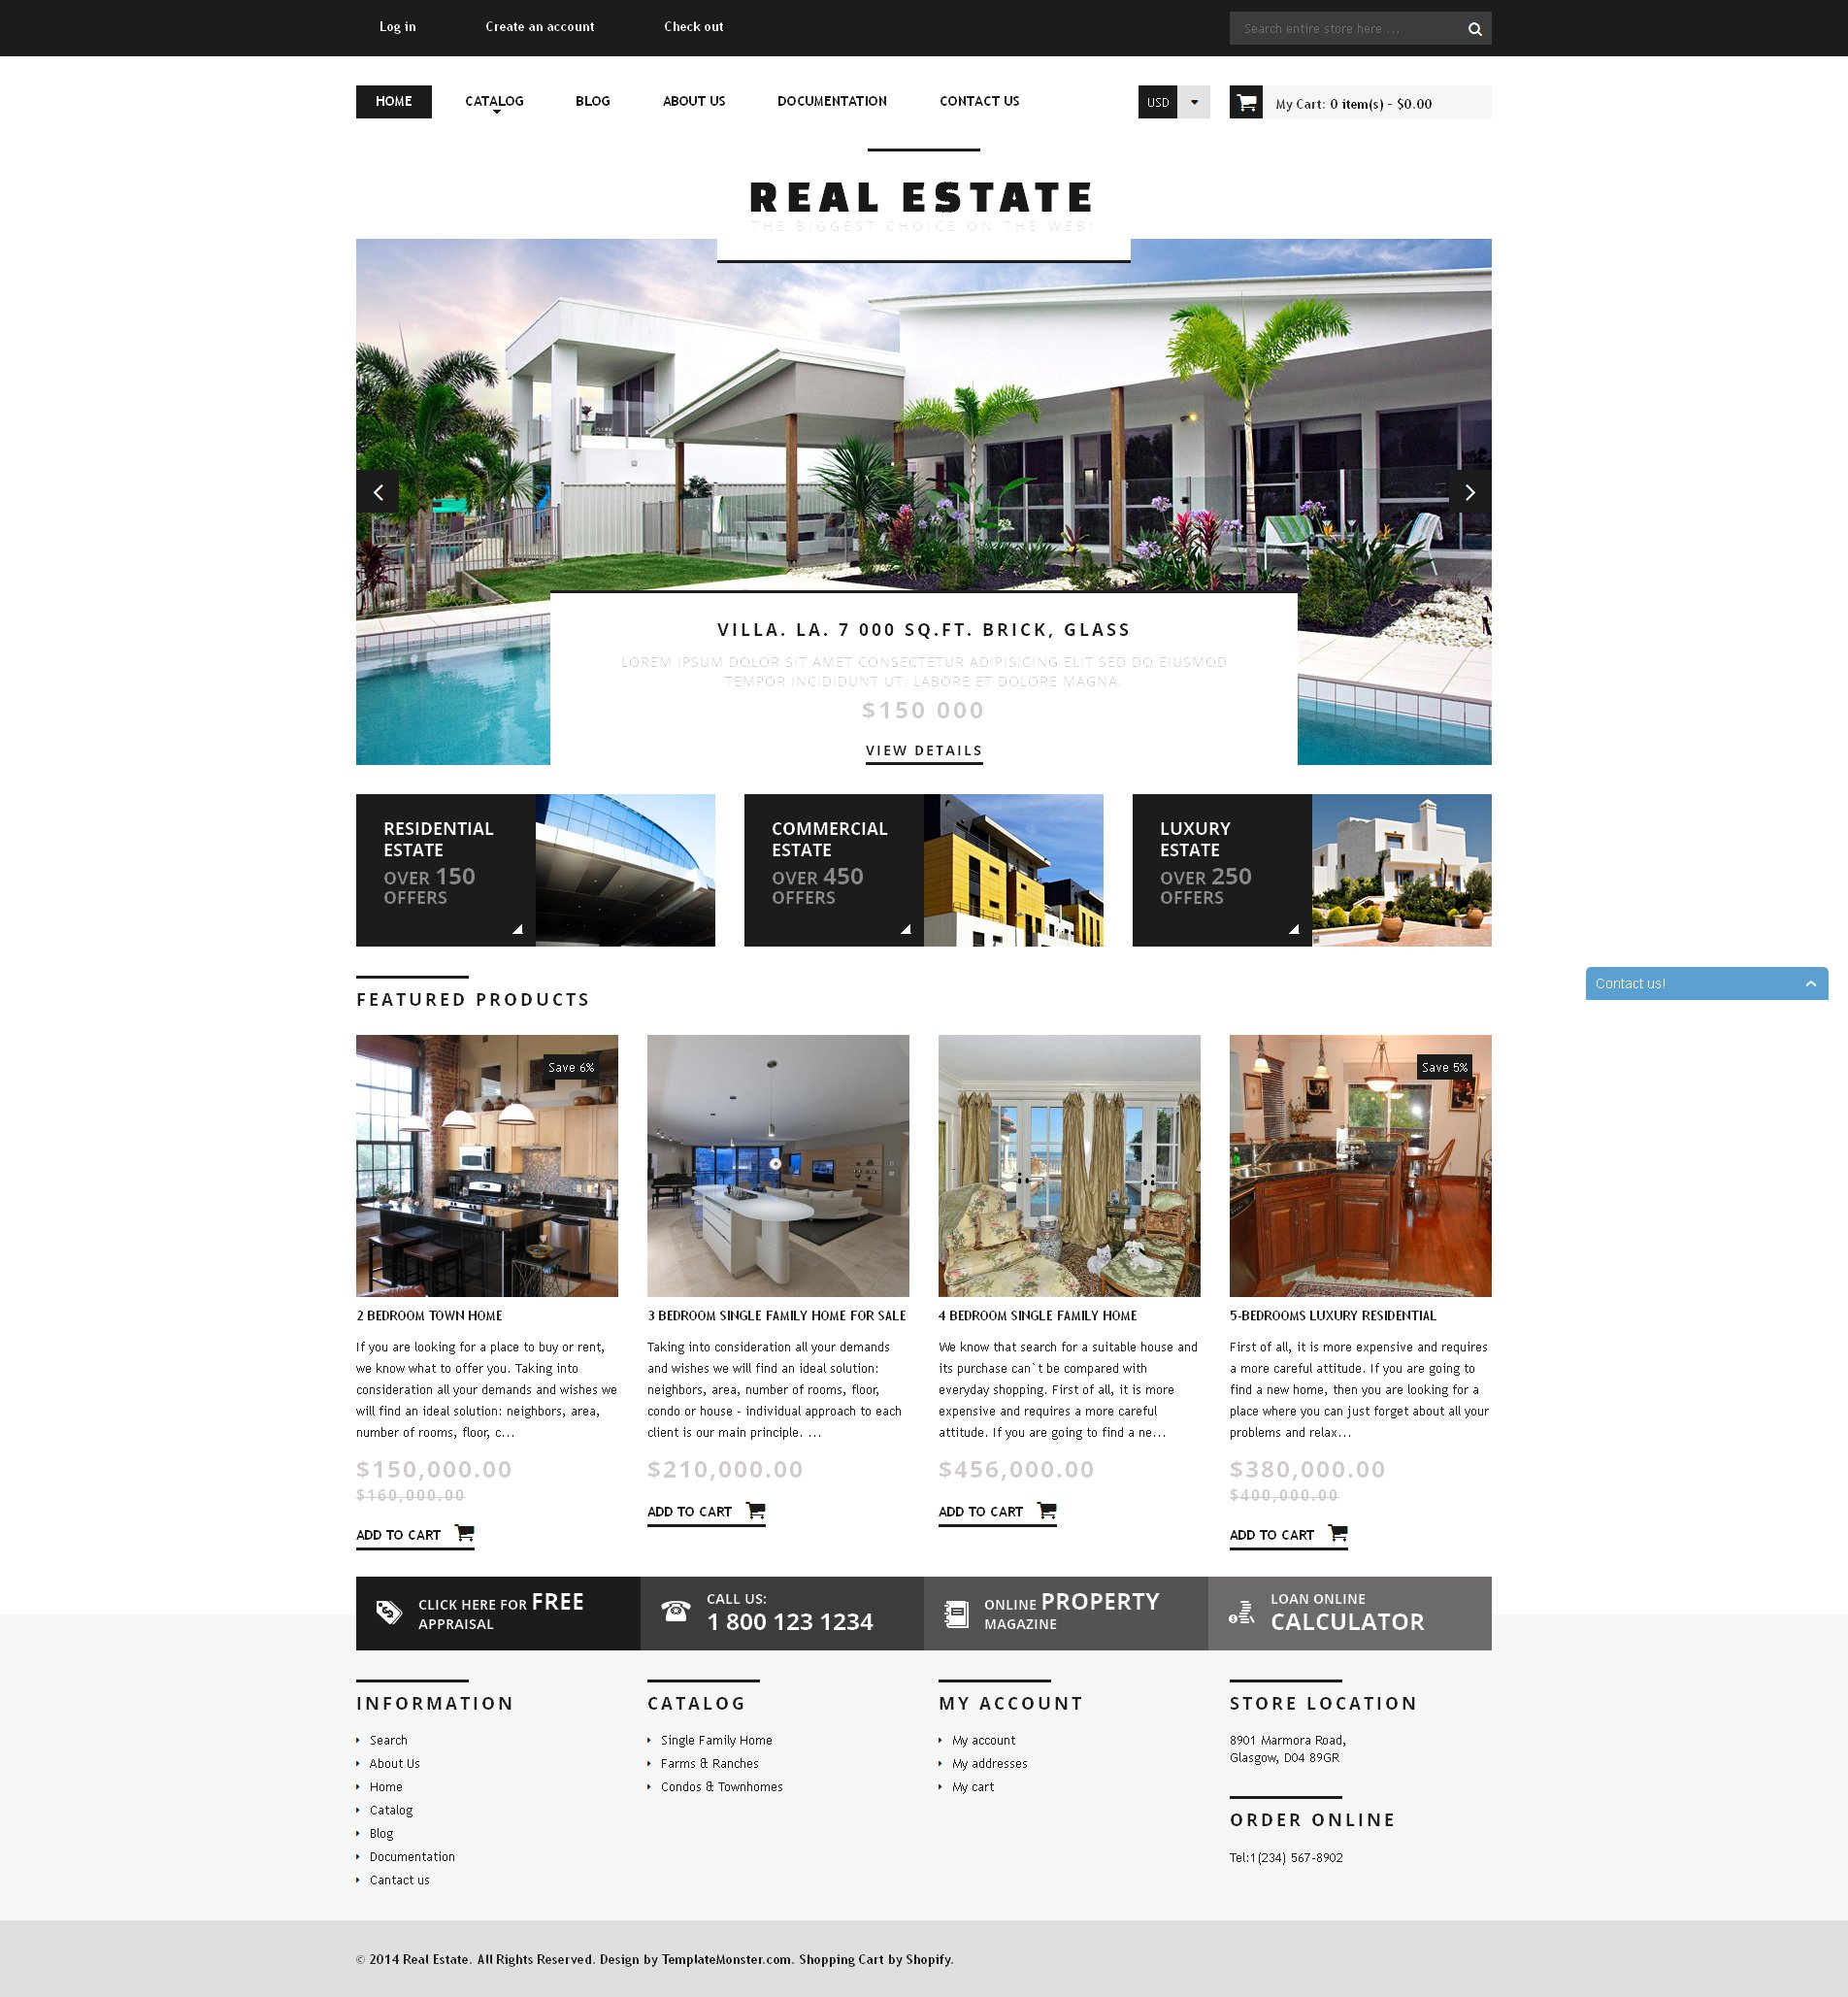 Real estate agency responsive shopify theme 50794 for Real estate craigslist template